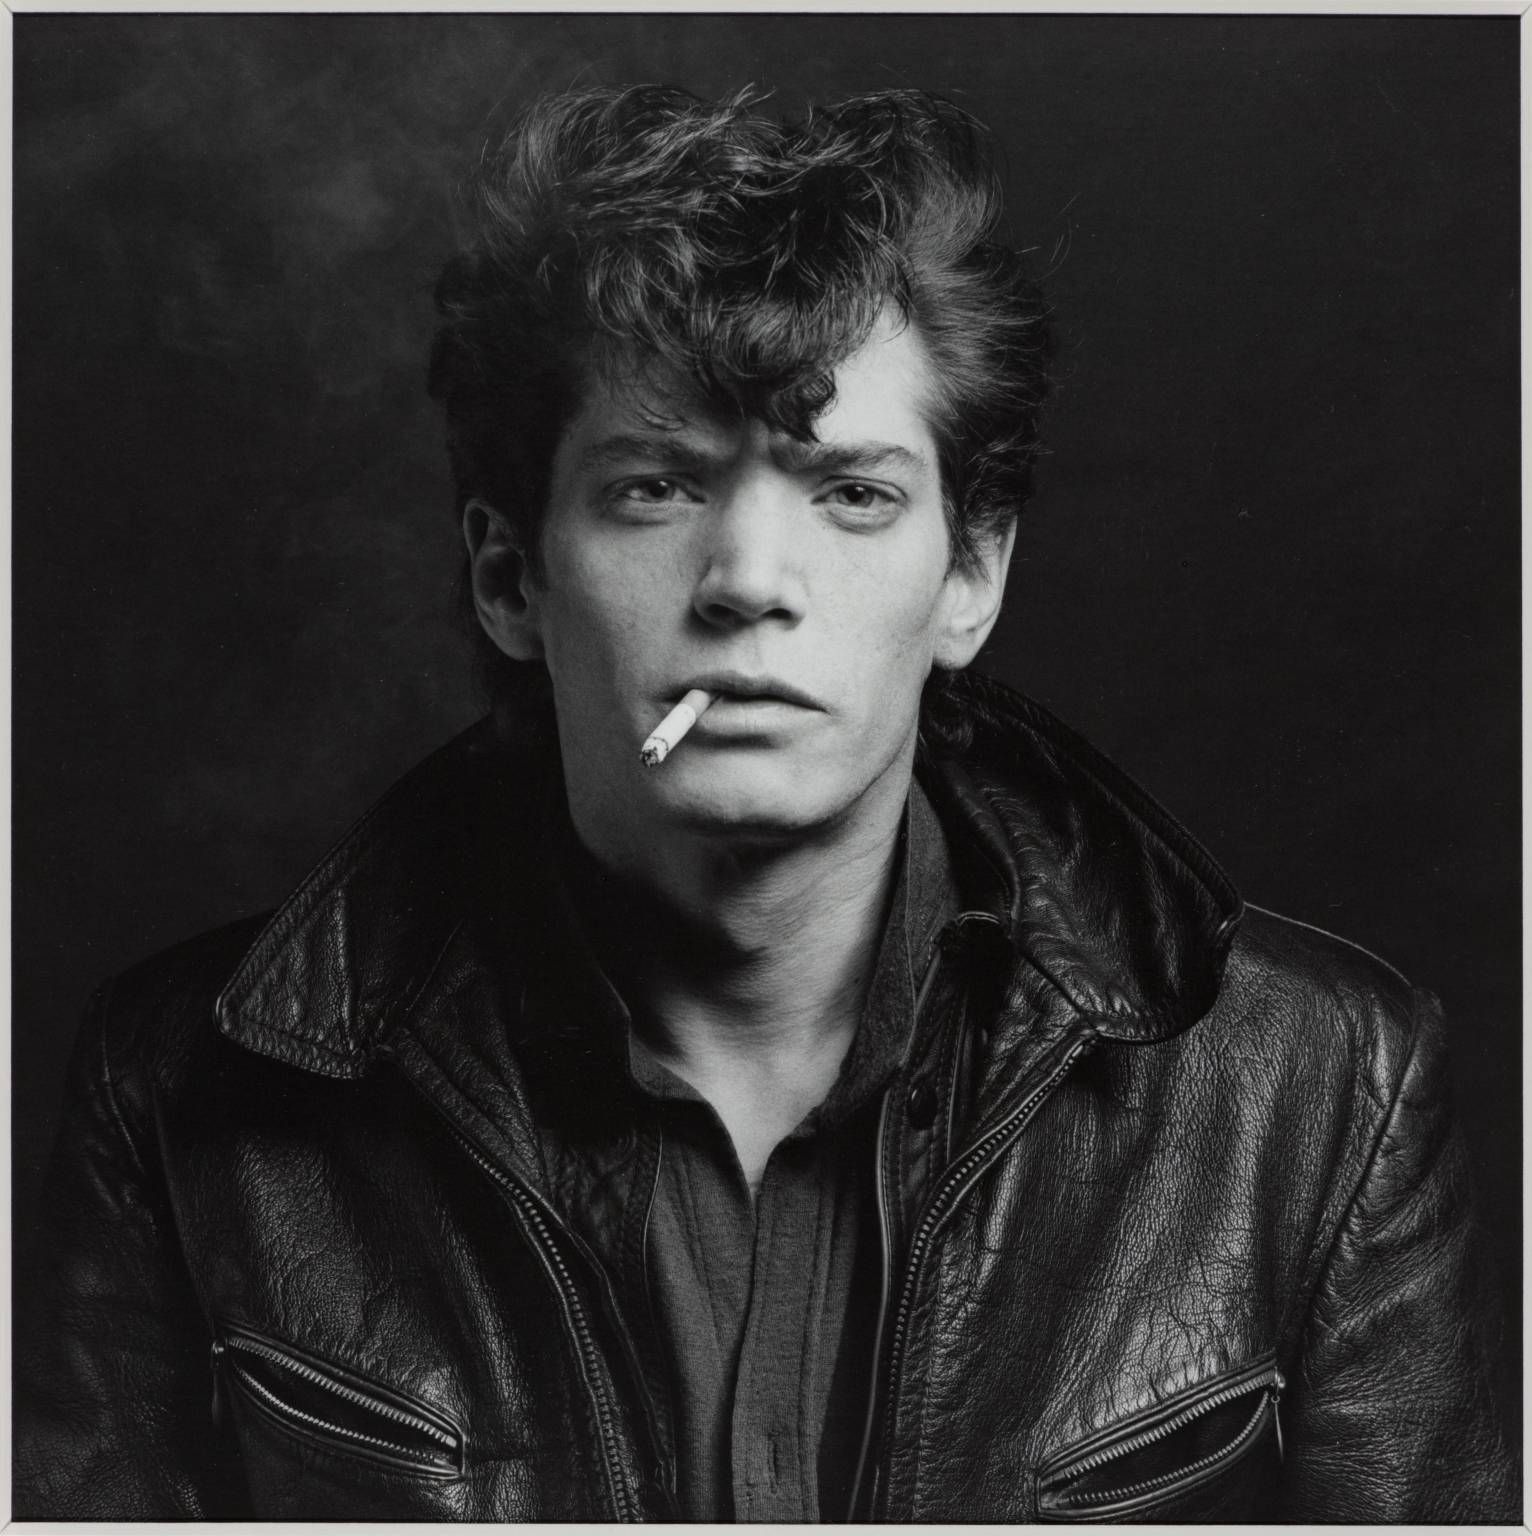 Self Portrait 1980 Robert Mapplethorpe 1946-1989 ARTIST ROOMS Acquired jointly with the National Galleries of Scotland through The d'Offay Donation with assistance from the National Heritage Memorial Fund and the Art Fund 2008 http://www.tate.org.uk/art/work/AR00225